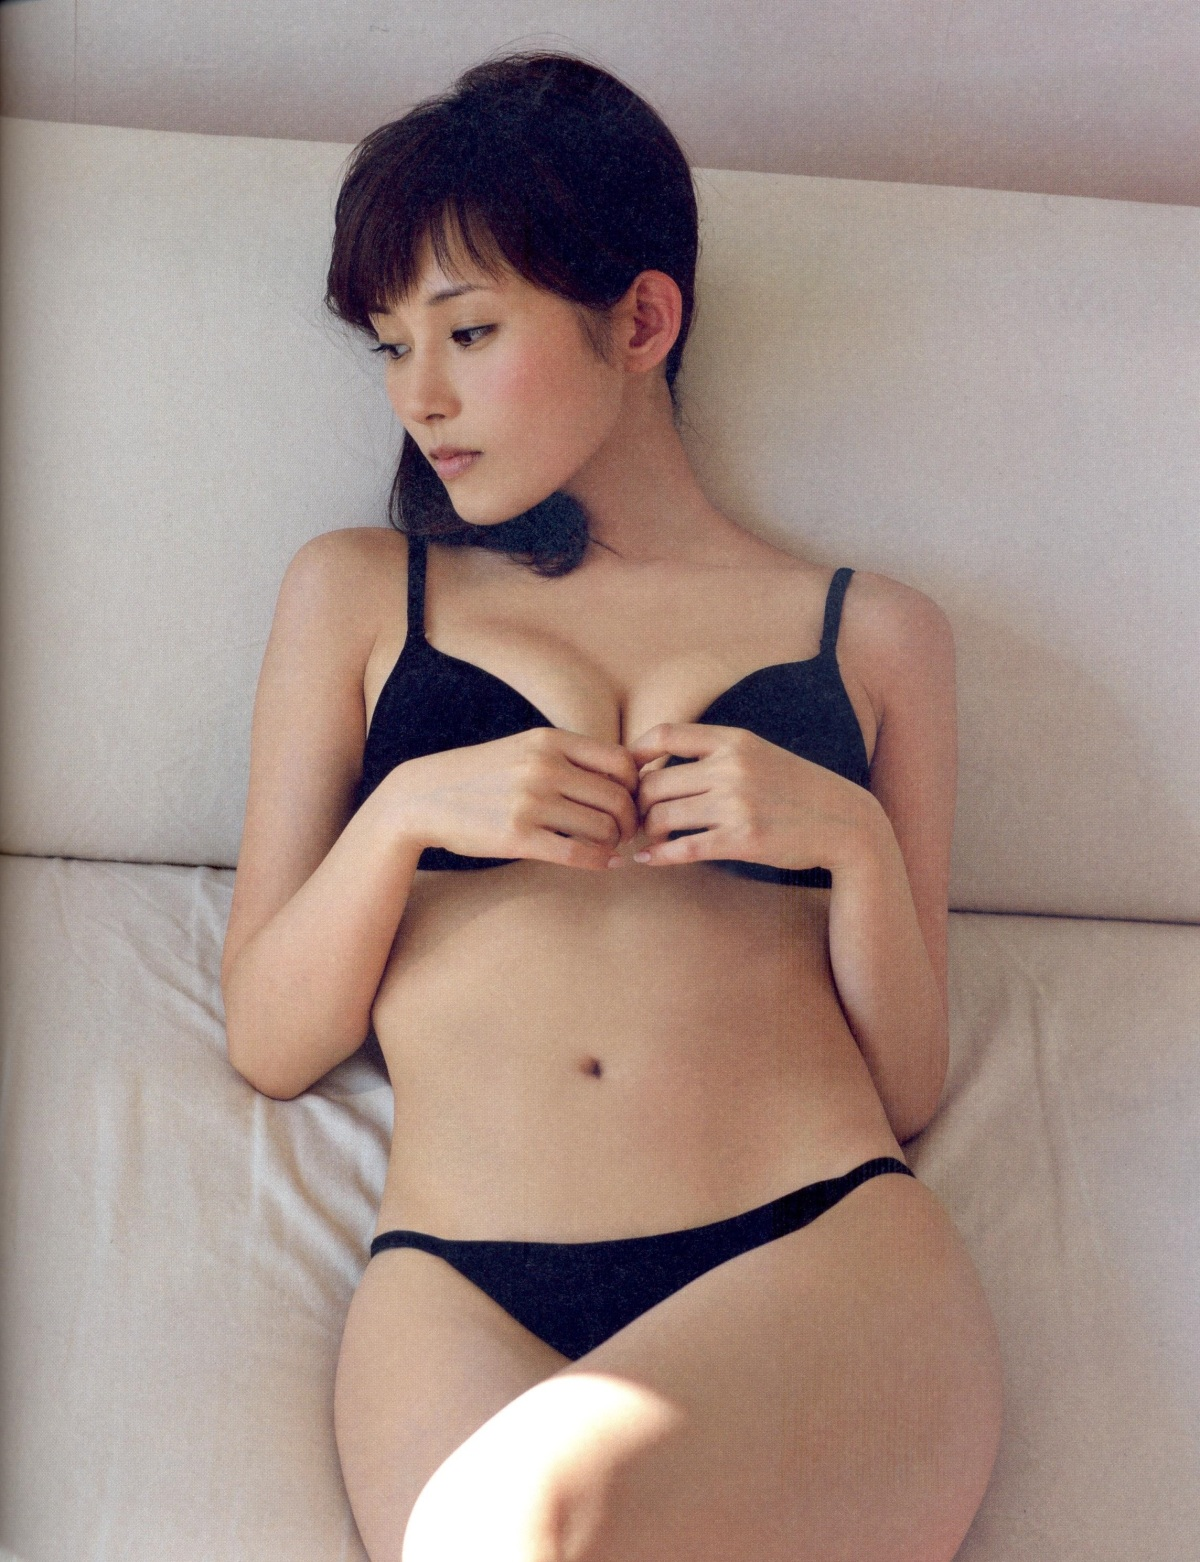 Natsumi Abe is Stunning in Her Photo book Fin No Hito